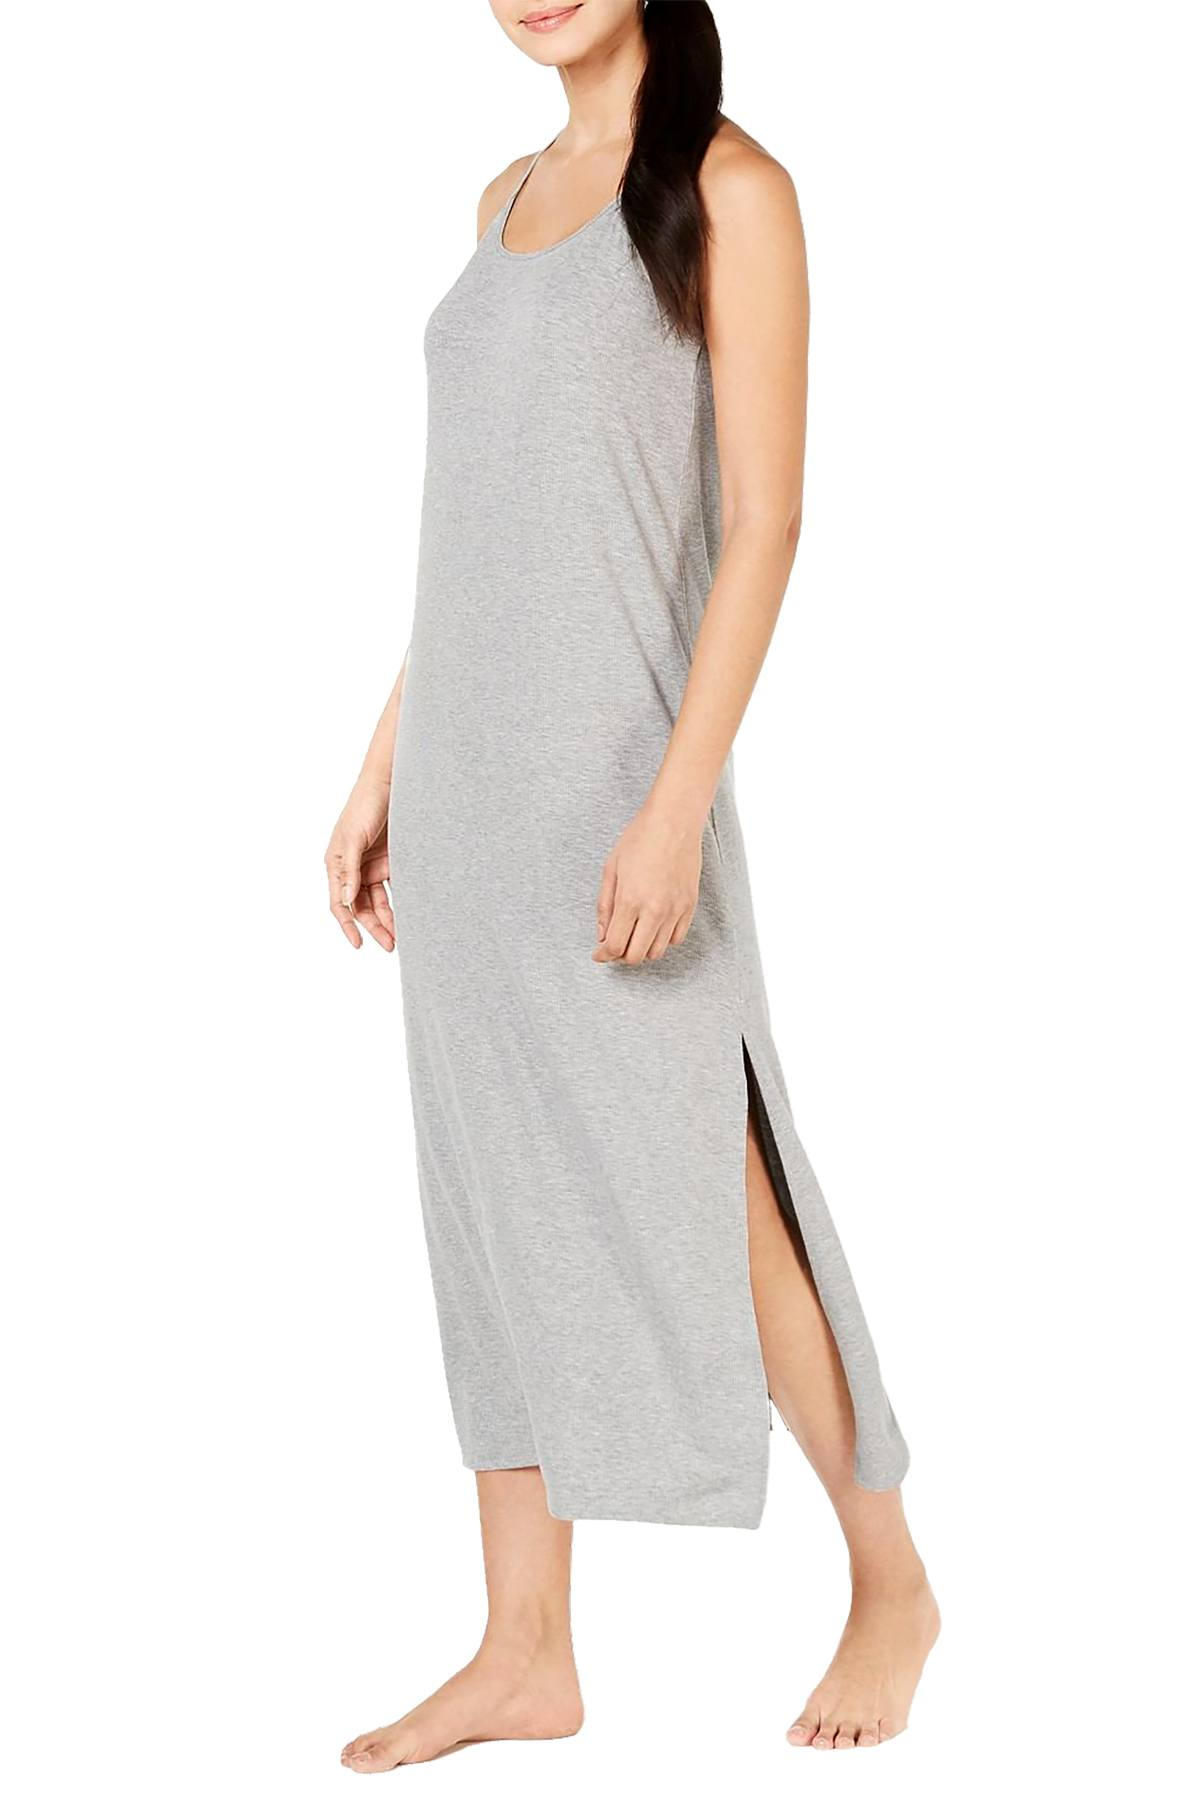 Alfani Ribbed Nightgown in Heather Grey